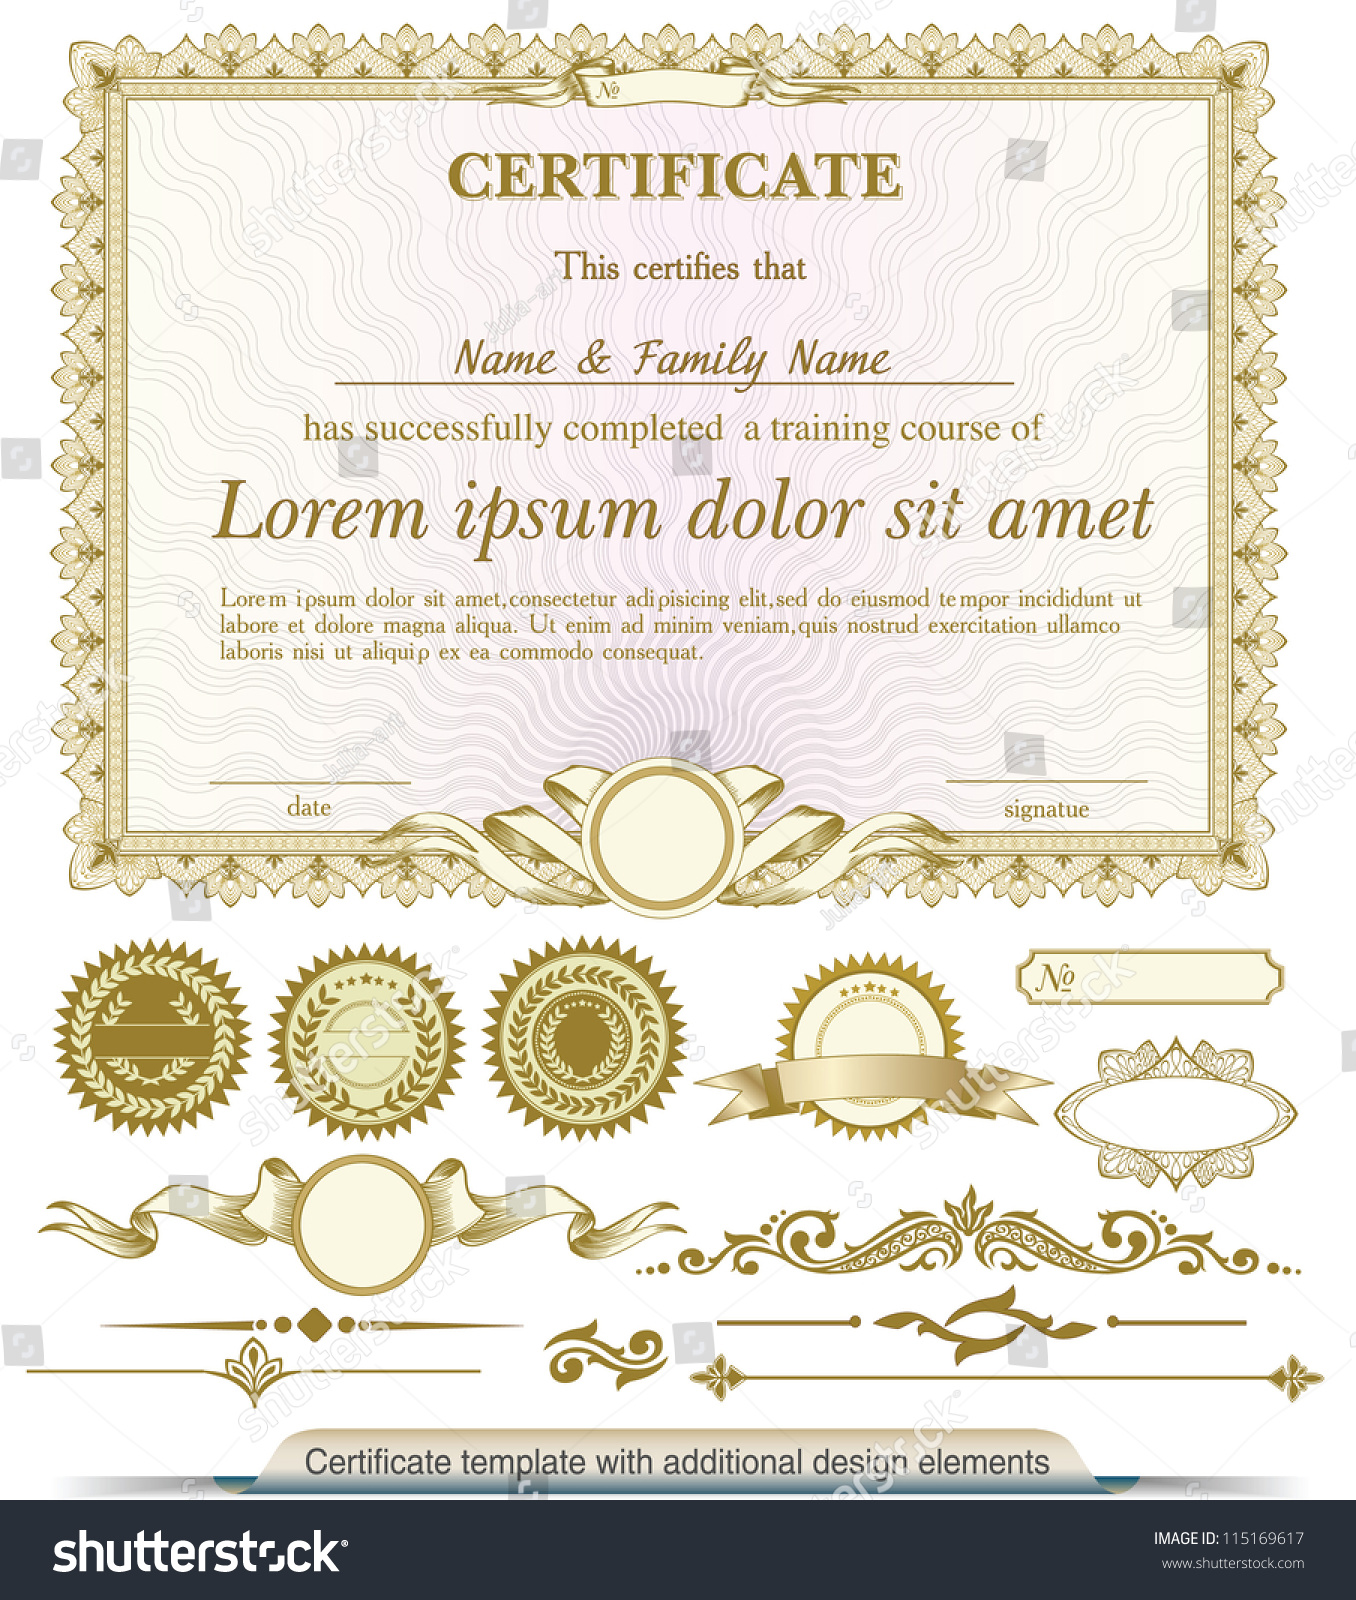 Gold Horizontal Certificate Template Additional Design ...